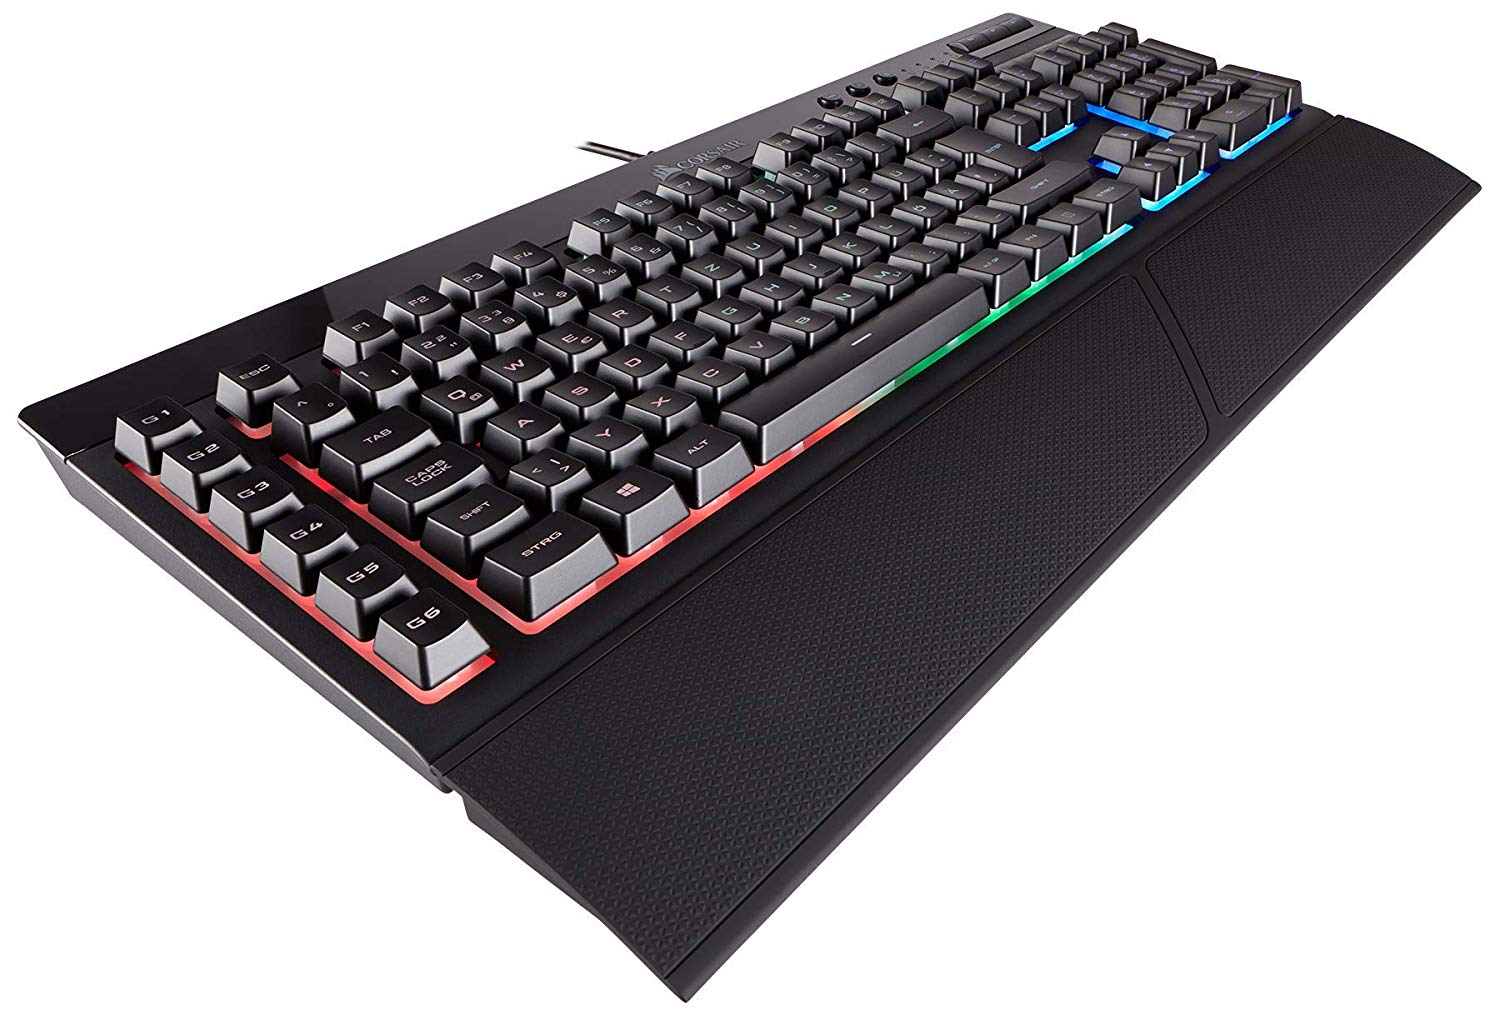 Corsair Gaming Tastatur amazon